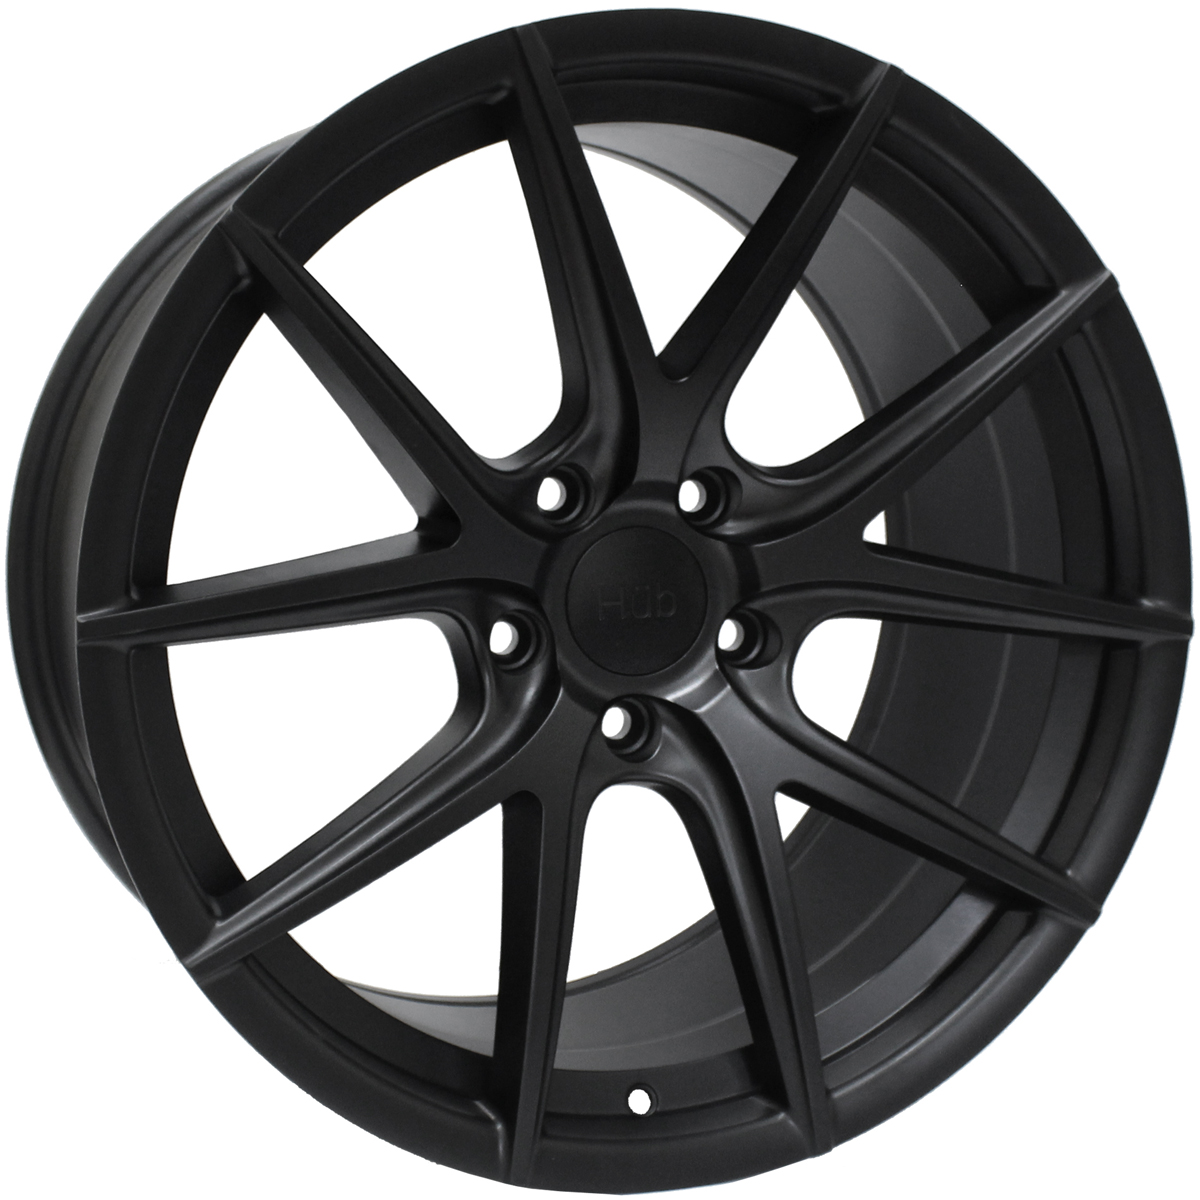 "NEW 19"" HUB V5 ALLOYS IN MATT BLACK WITH WIDER 9.5"" REARS"